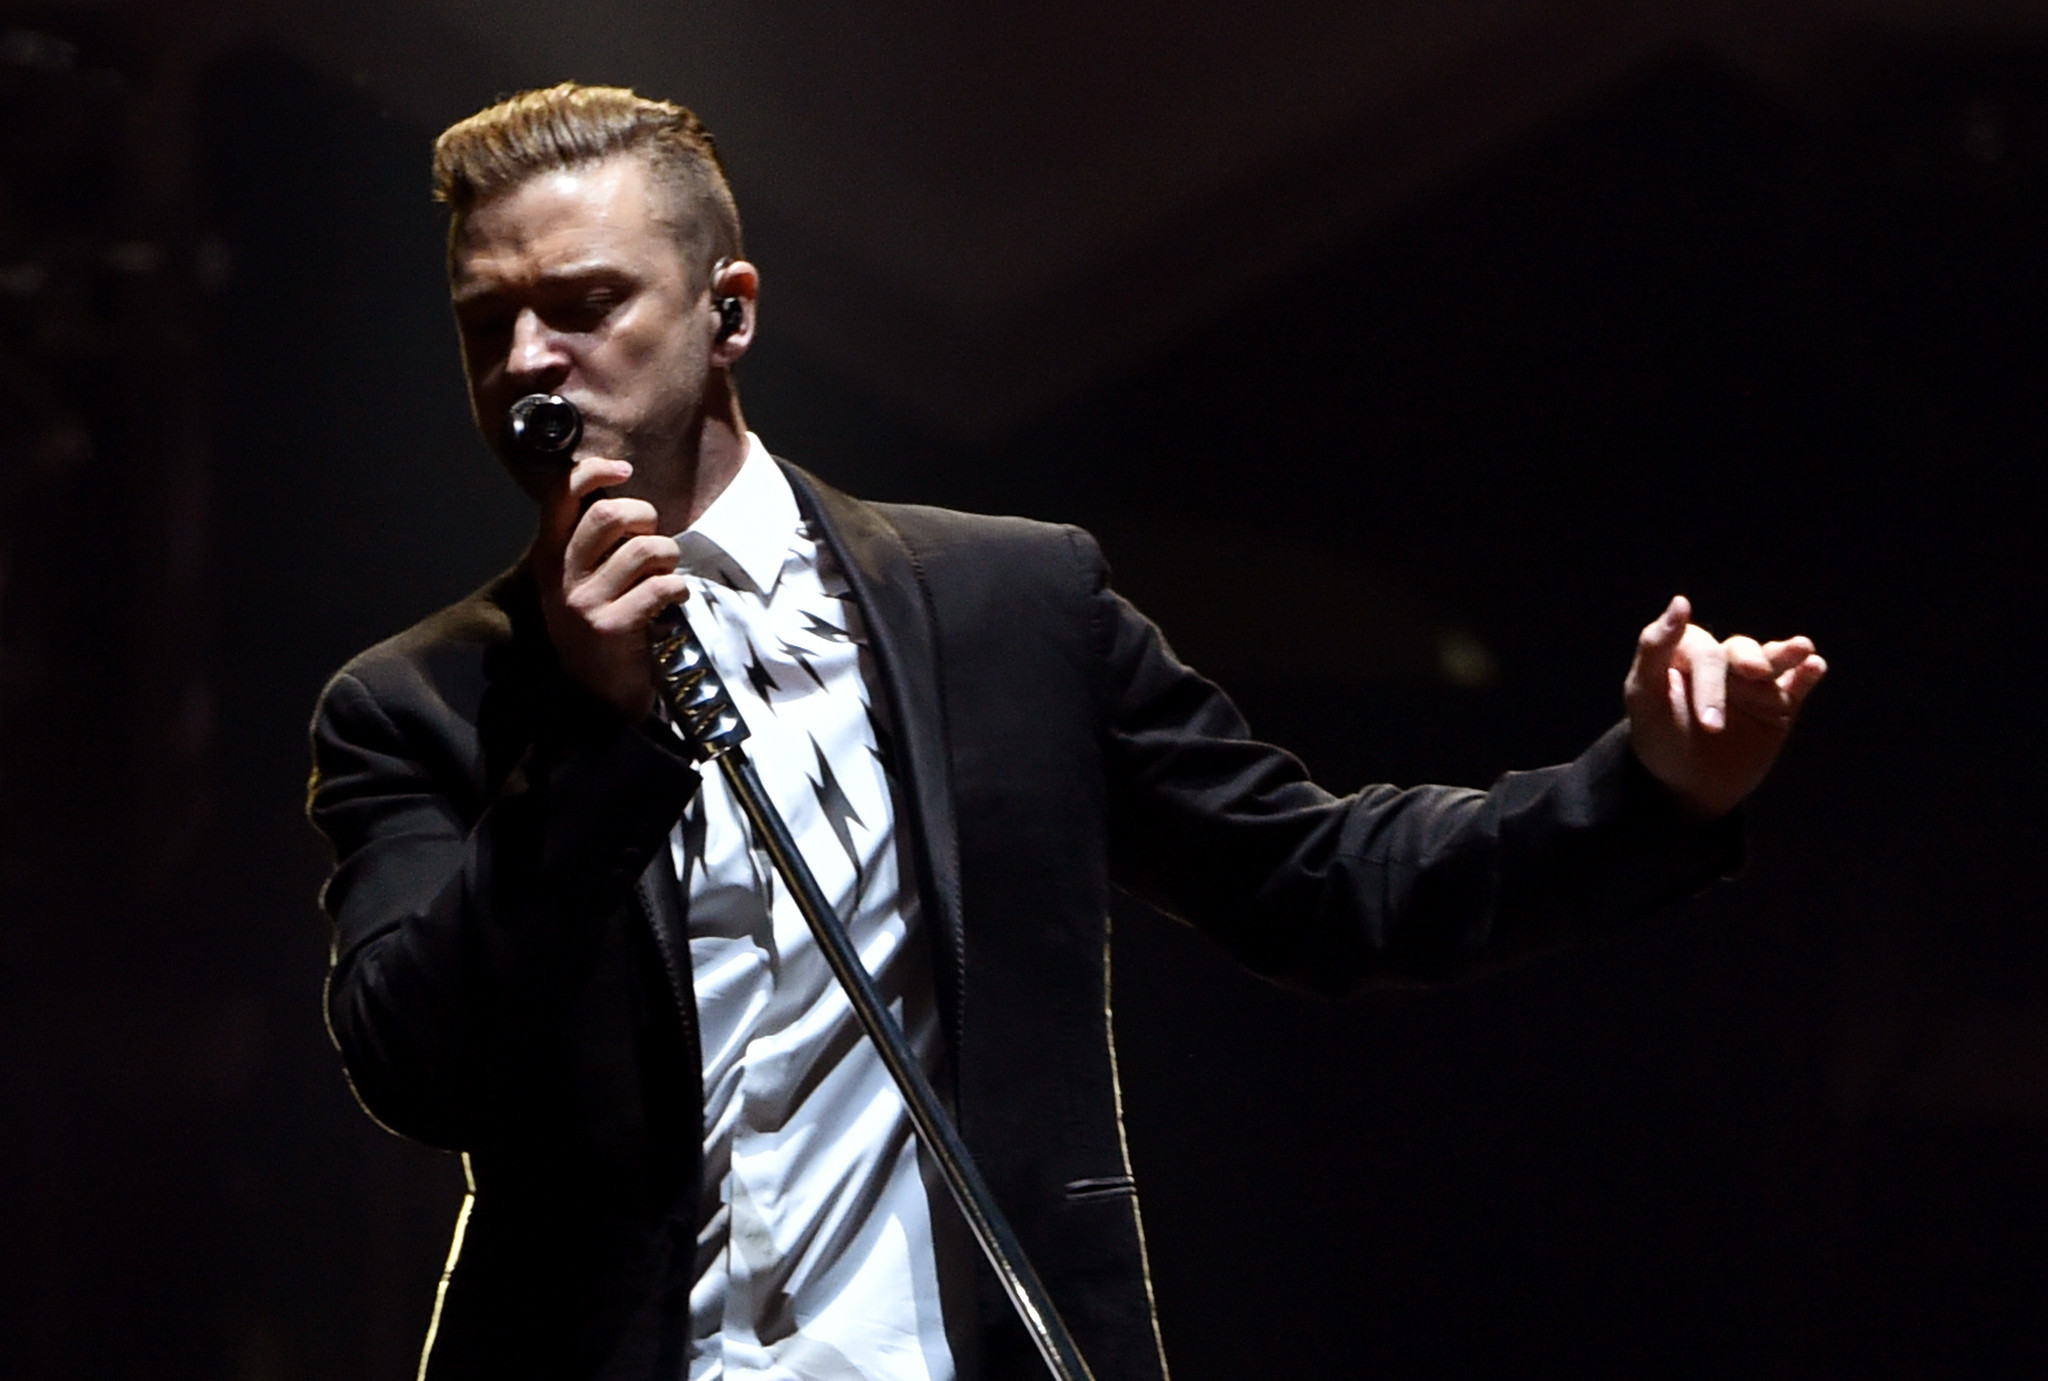 Justin Timberlake Wallpapers, Pictures, Images